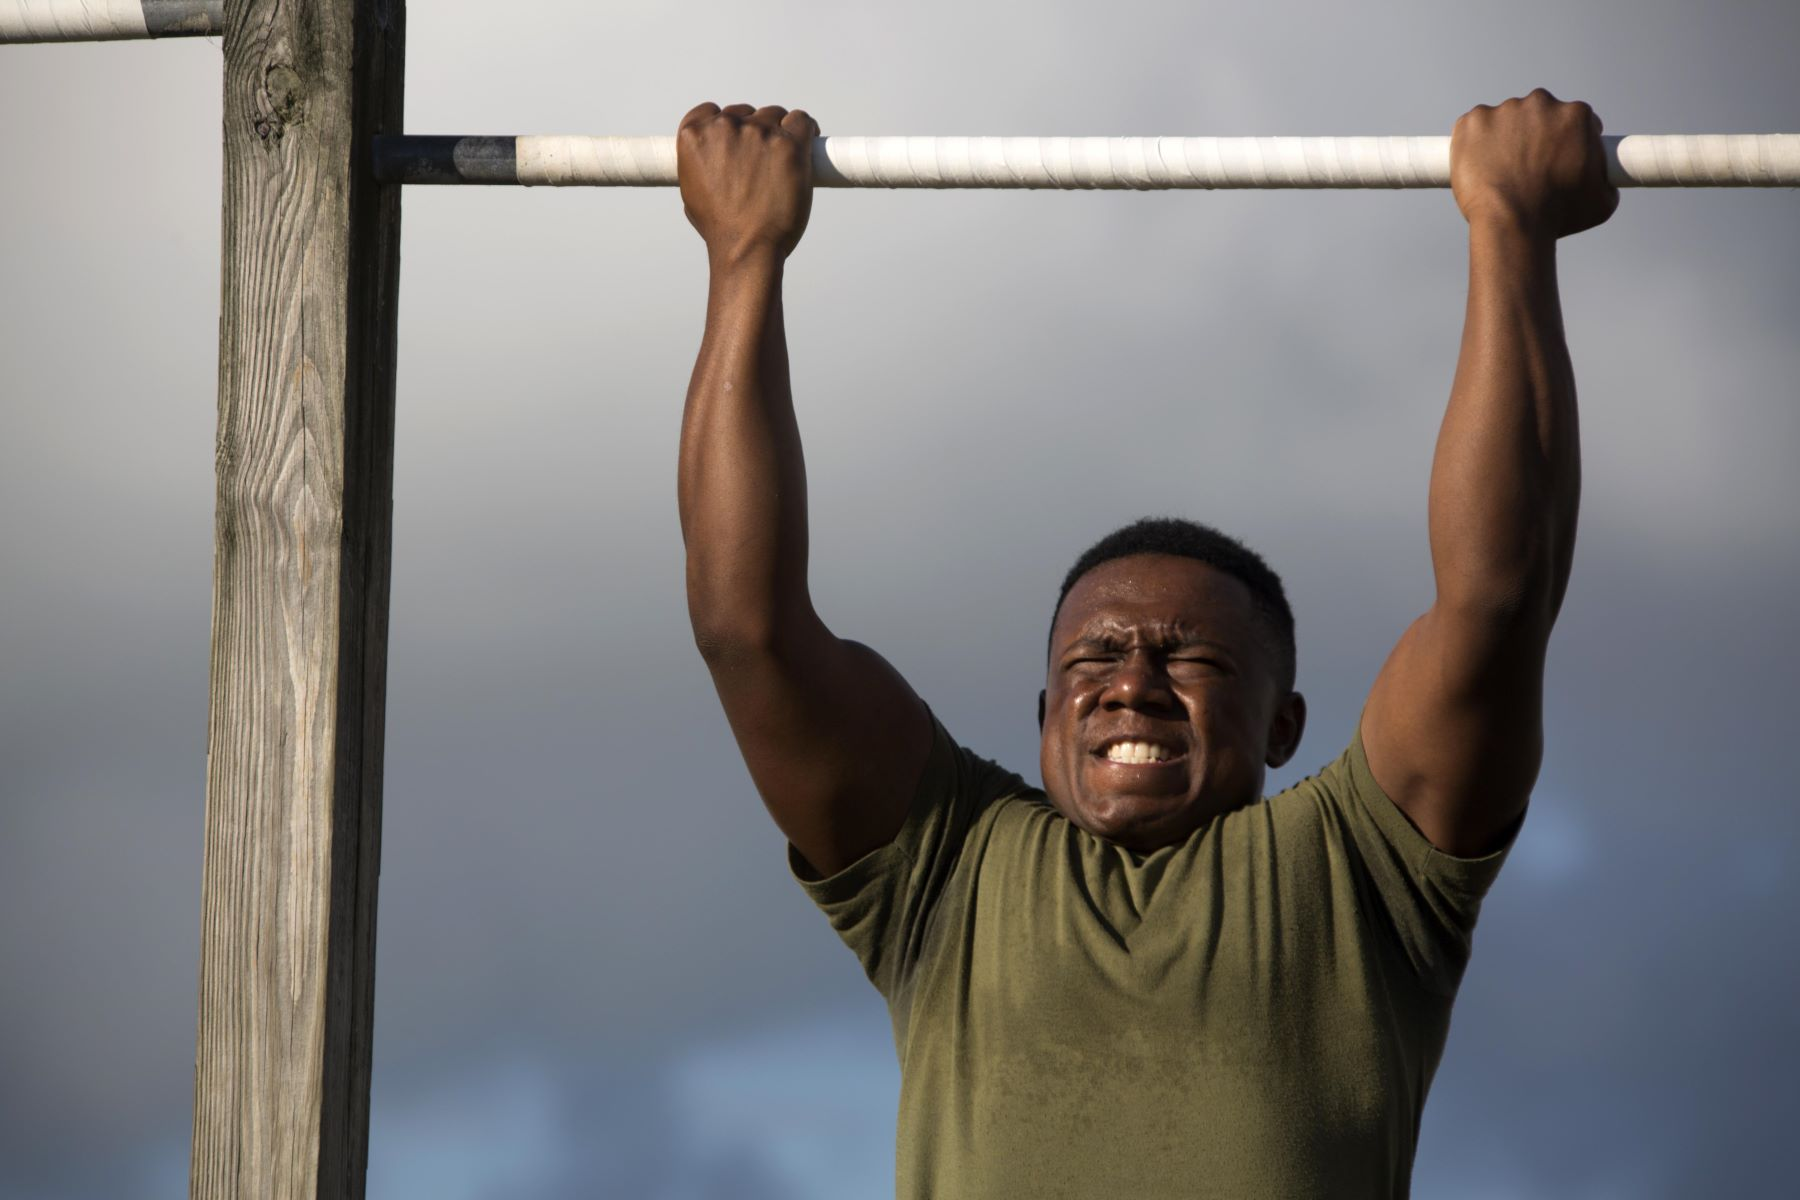 Marines' Obsession with Pull-Ups May Be Hurting the Corps, Study Finds